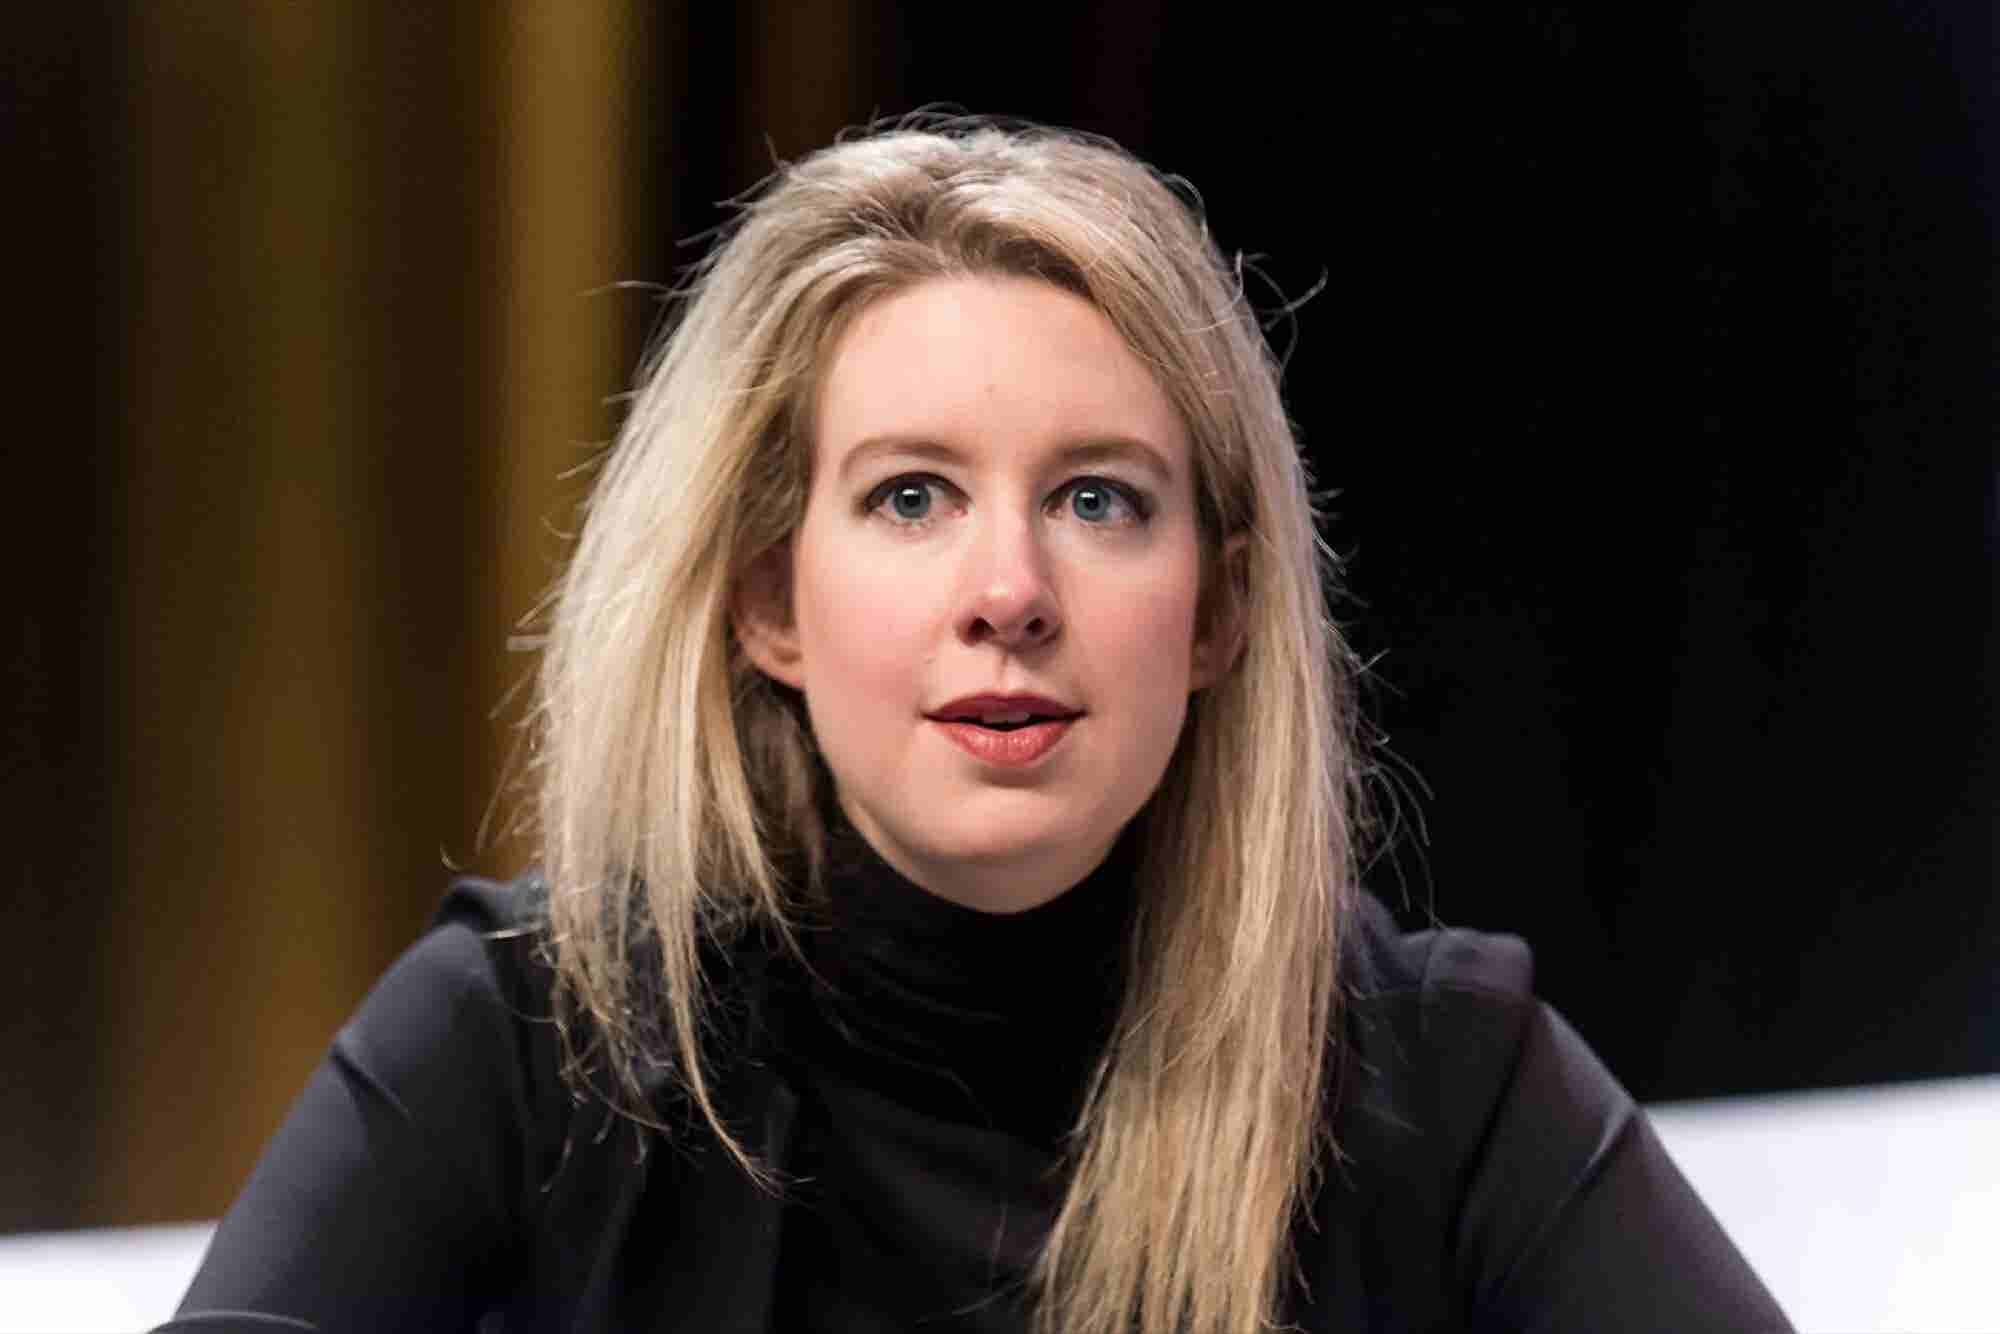 New Book Details the Spiral of Elizabeth Holmes From Celebrated CEO to Silicon Valley Outcast